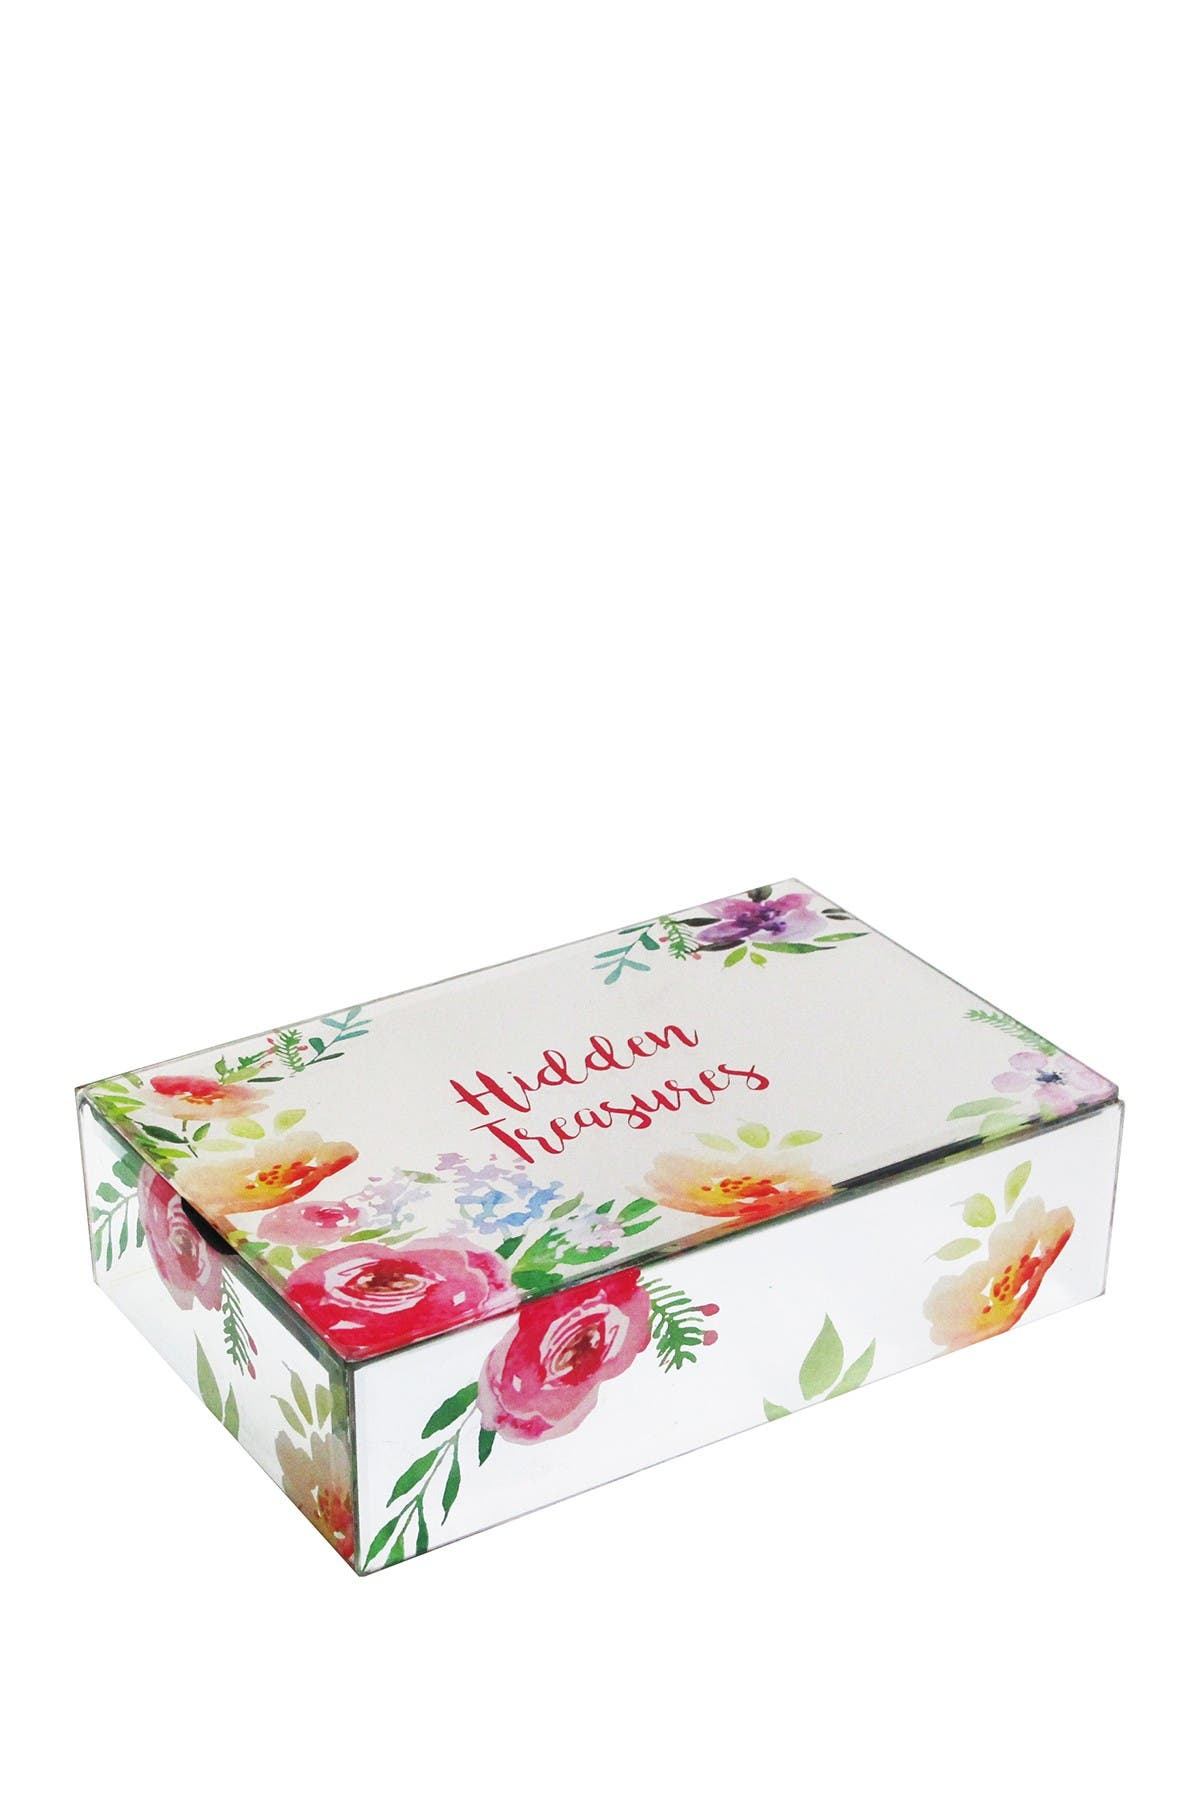 Image of Jay Import Hidden Treasures Floral Box